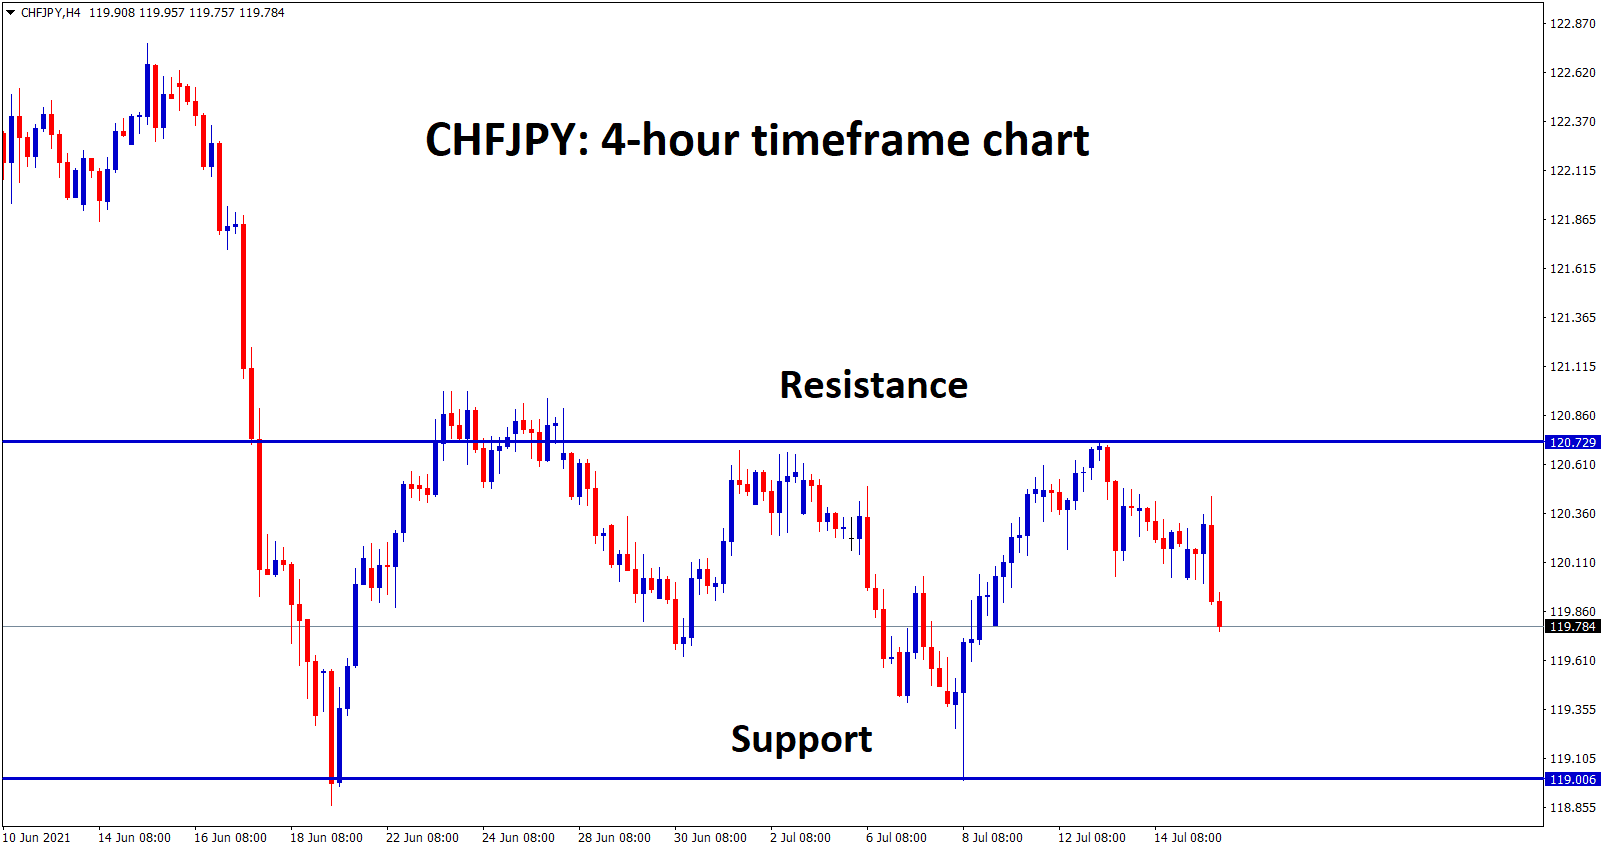 CHFJPY is moving up and down between the resistance and support levels